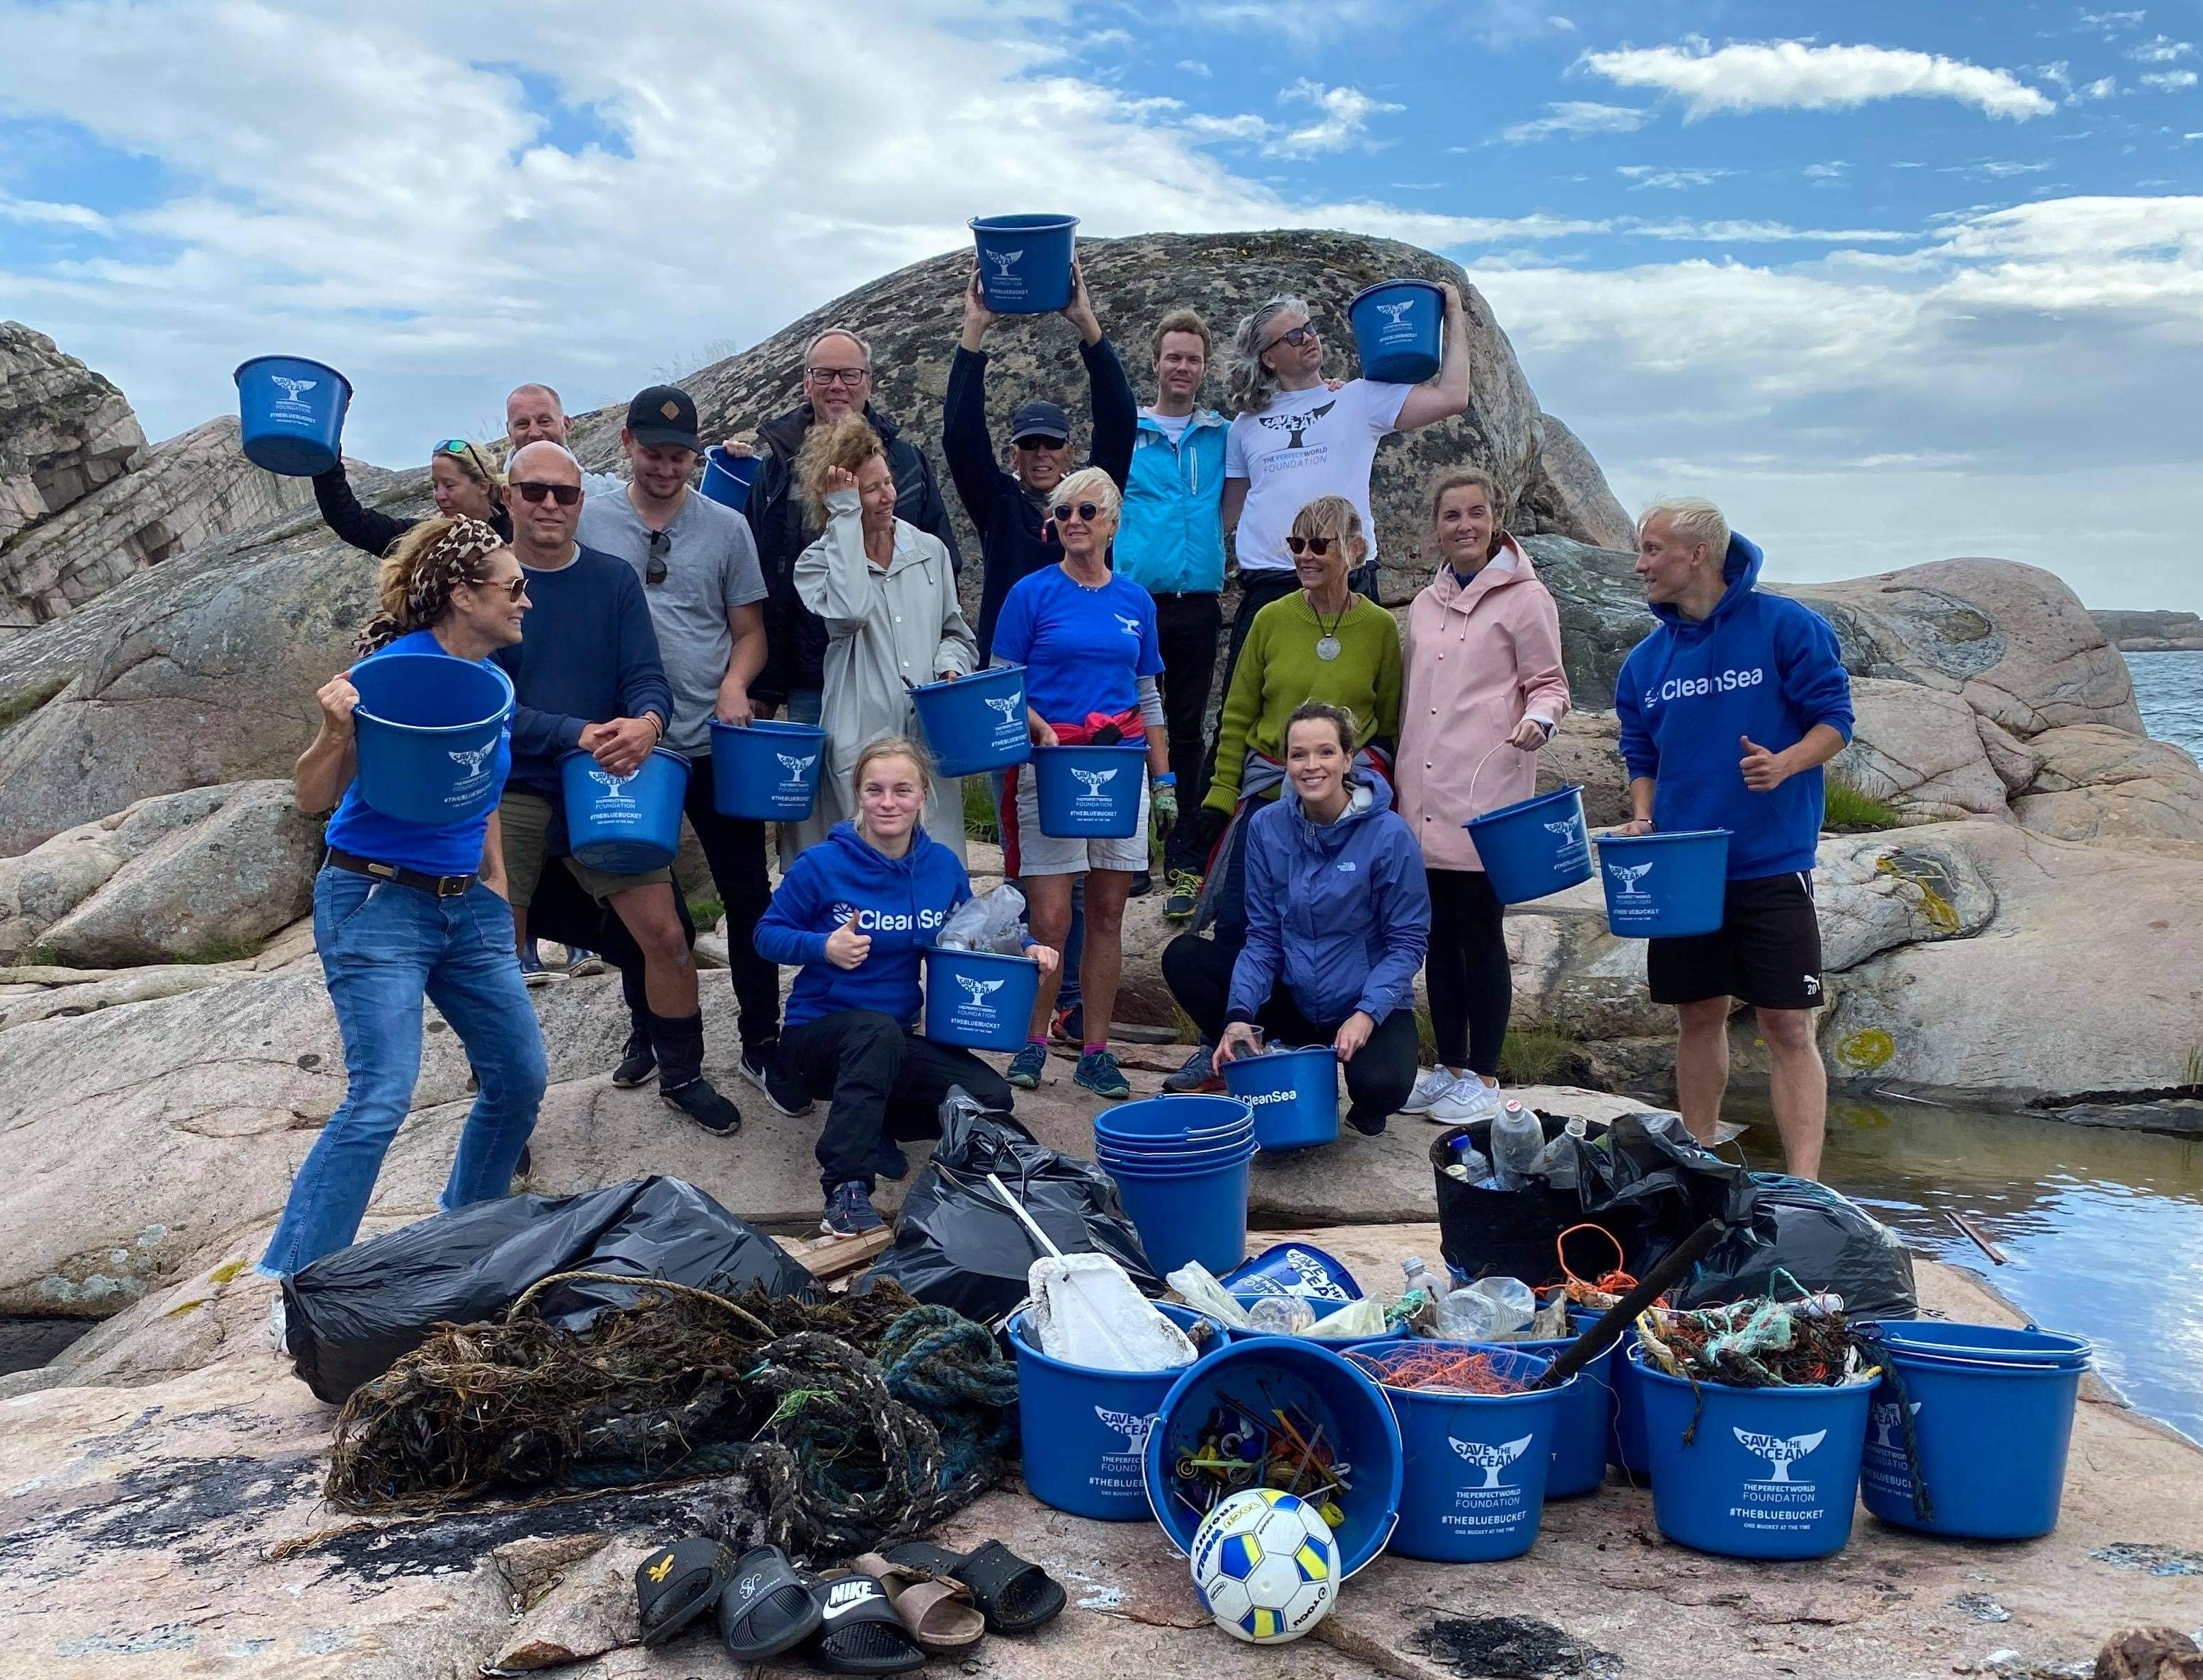 CleanSea and The Perfect World Foundation coastal cleanup in Bohuslän, Sweden